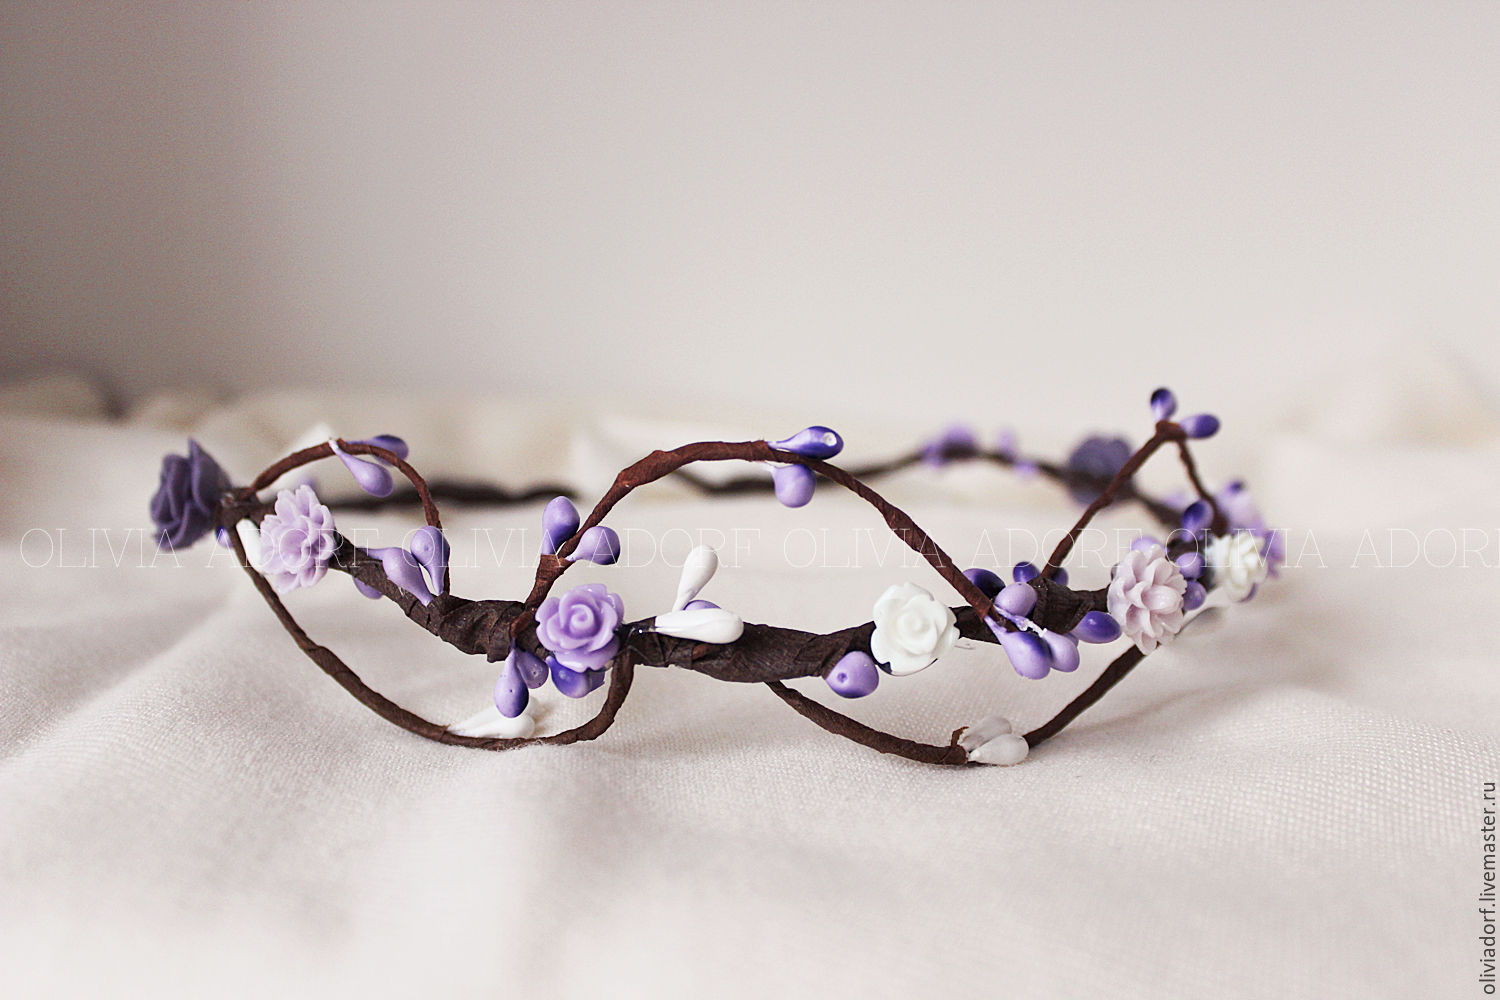 Wedding Floral Crown With White And Violet Roses Bridal Headpiece